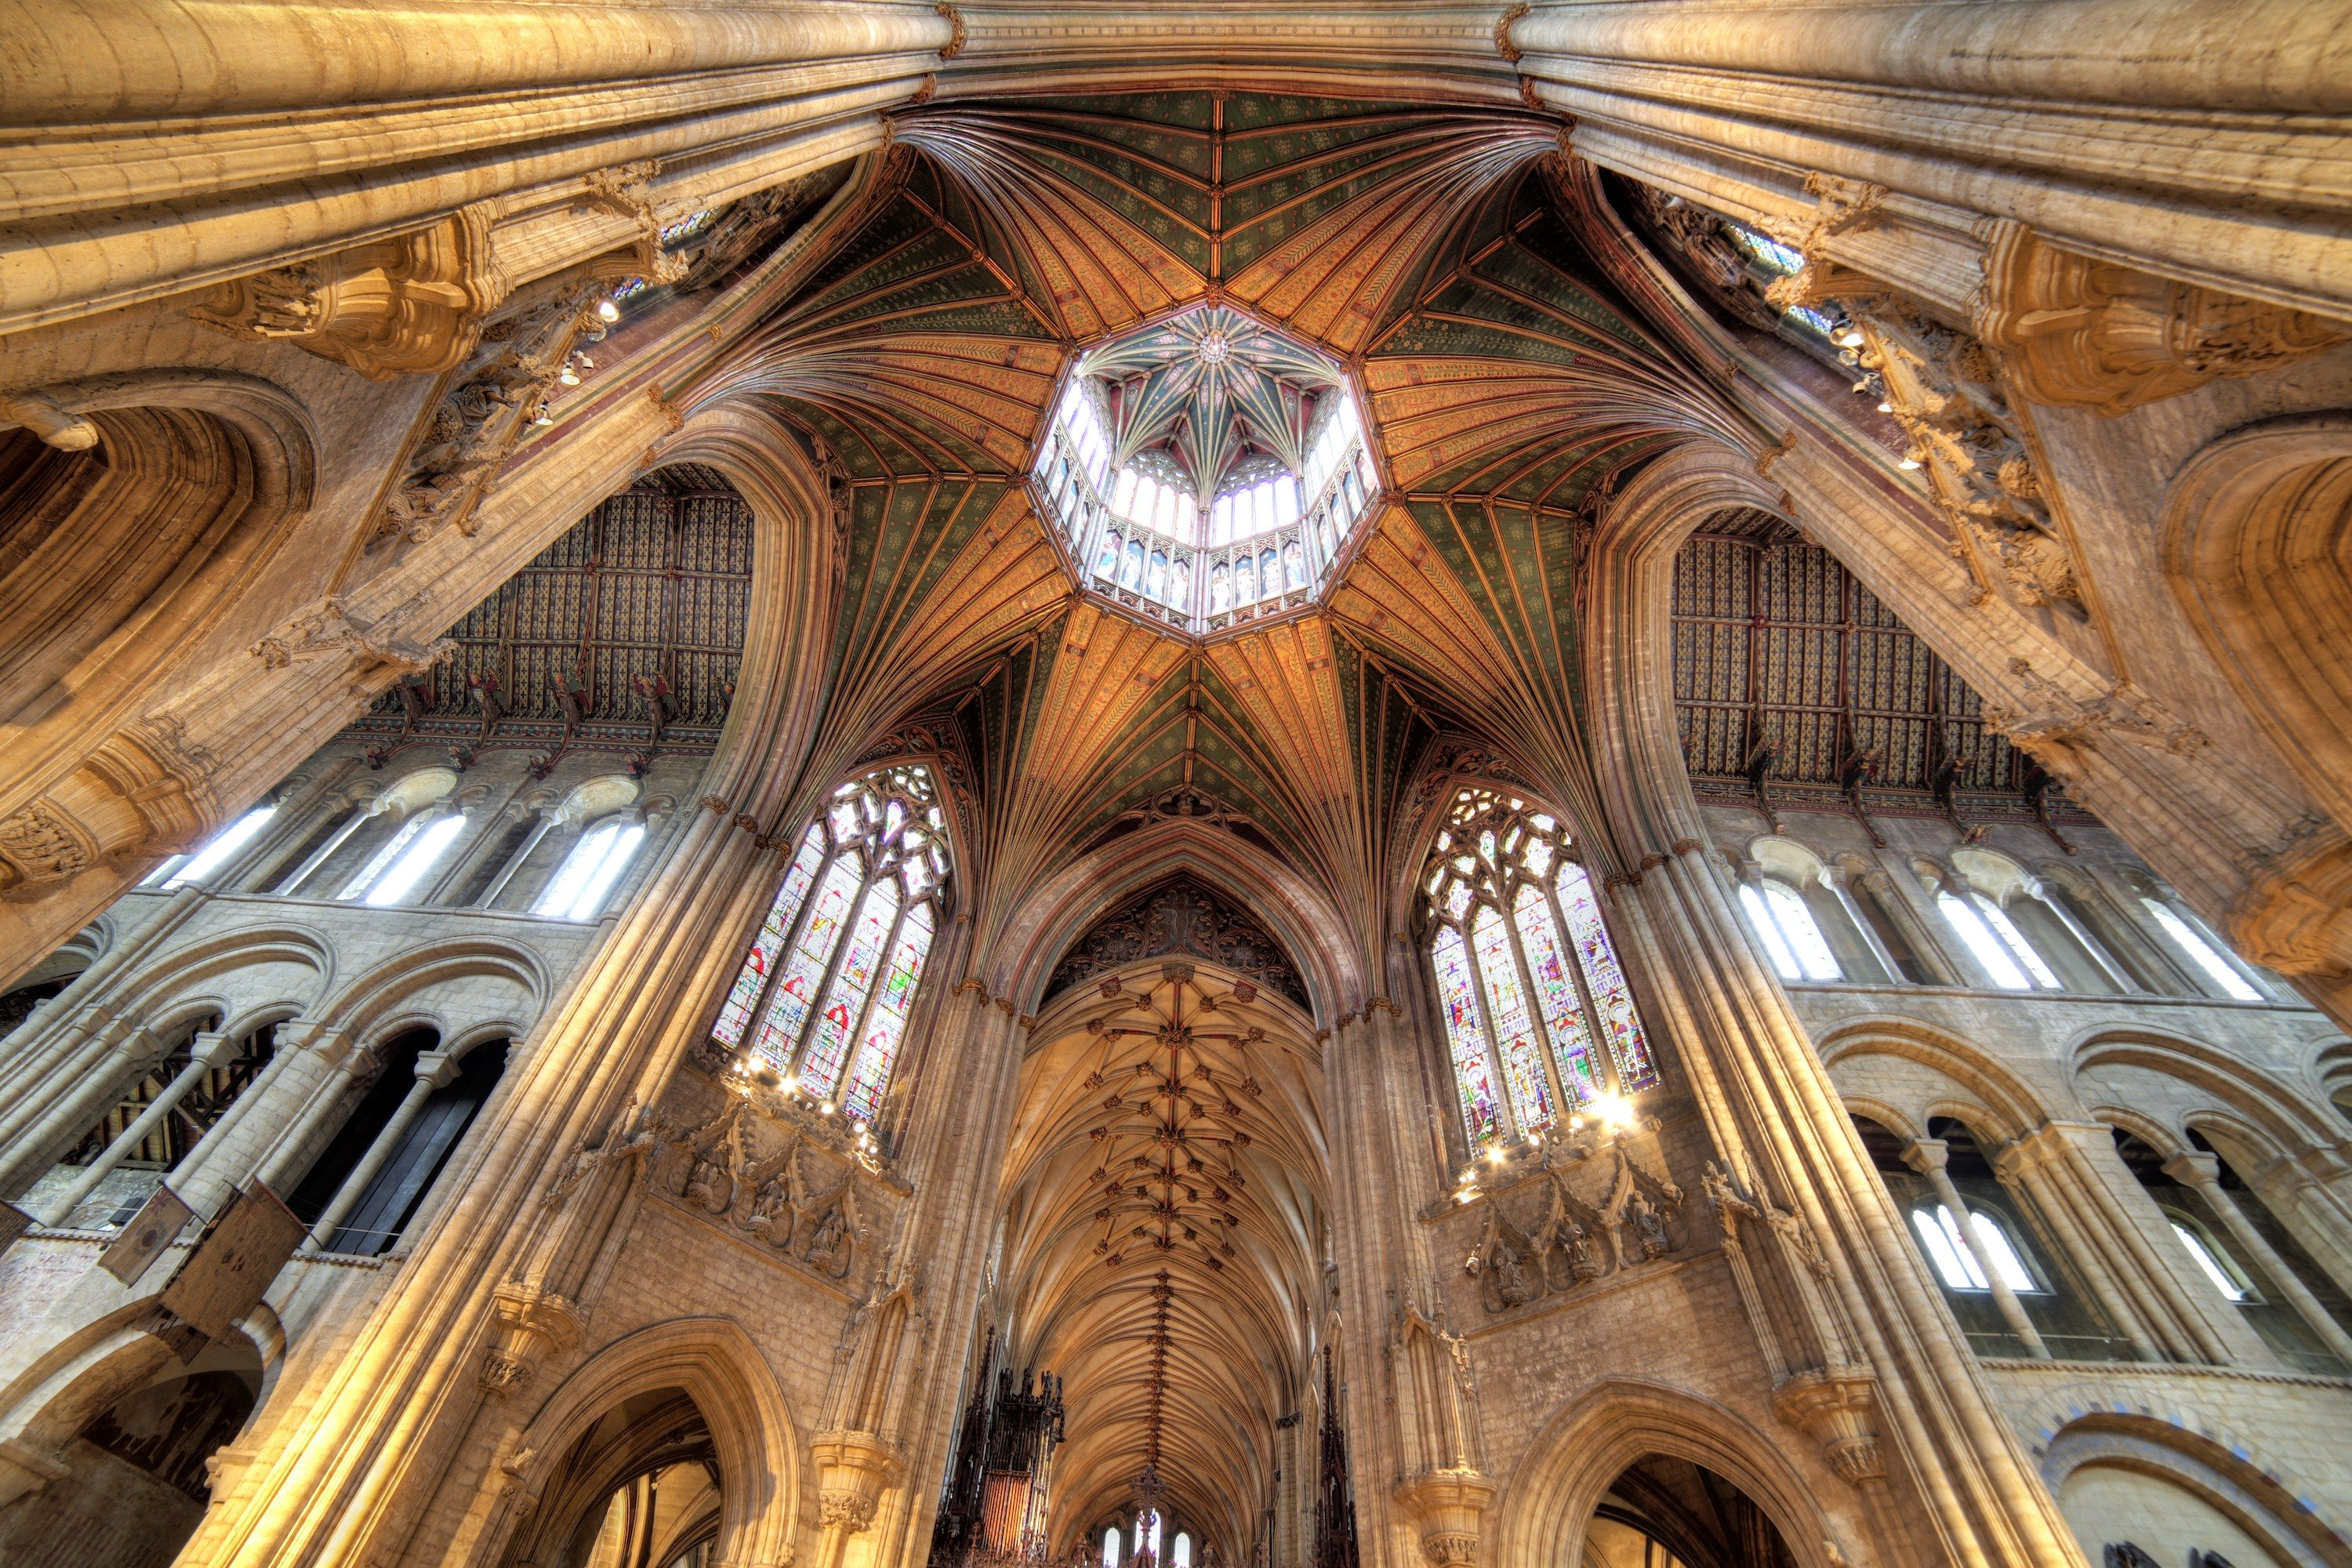 Ely Cathedral in Cambridgeshire, England.Most Beautiful Church Ceilings Photos   Architectural Digest